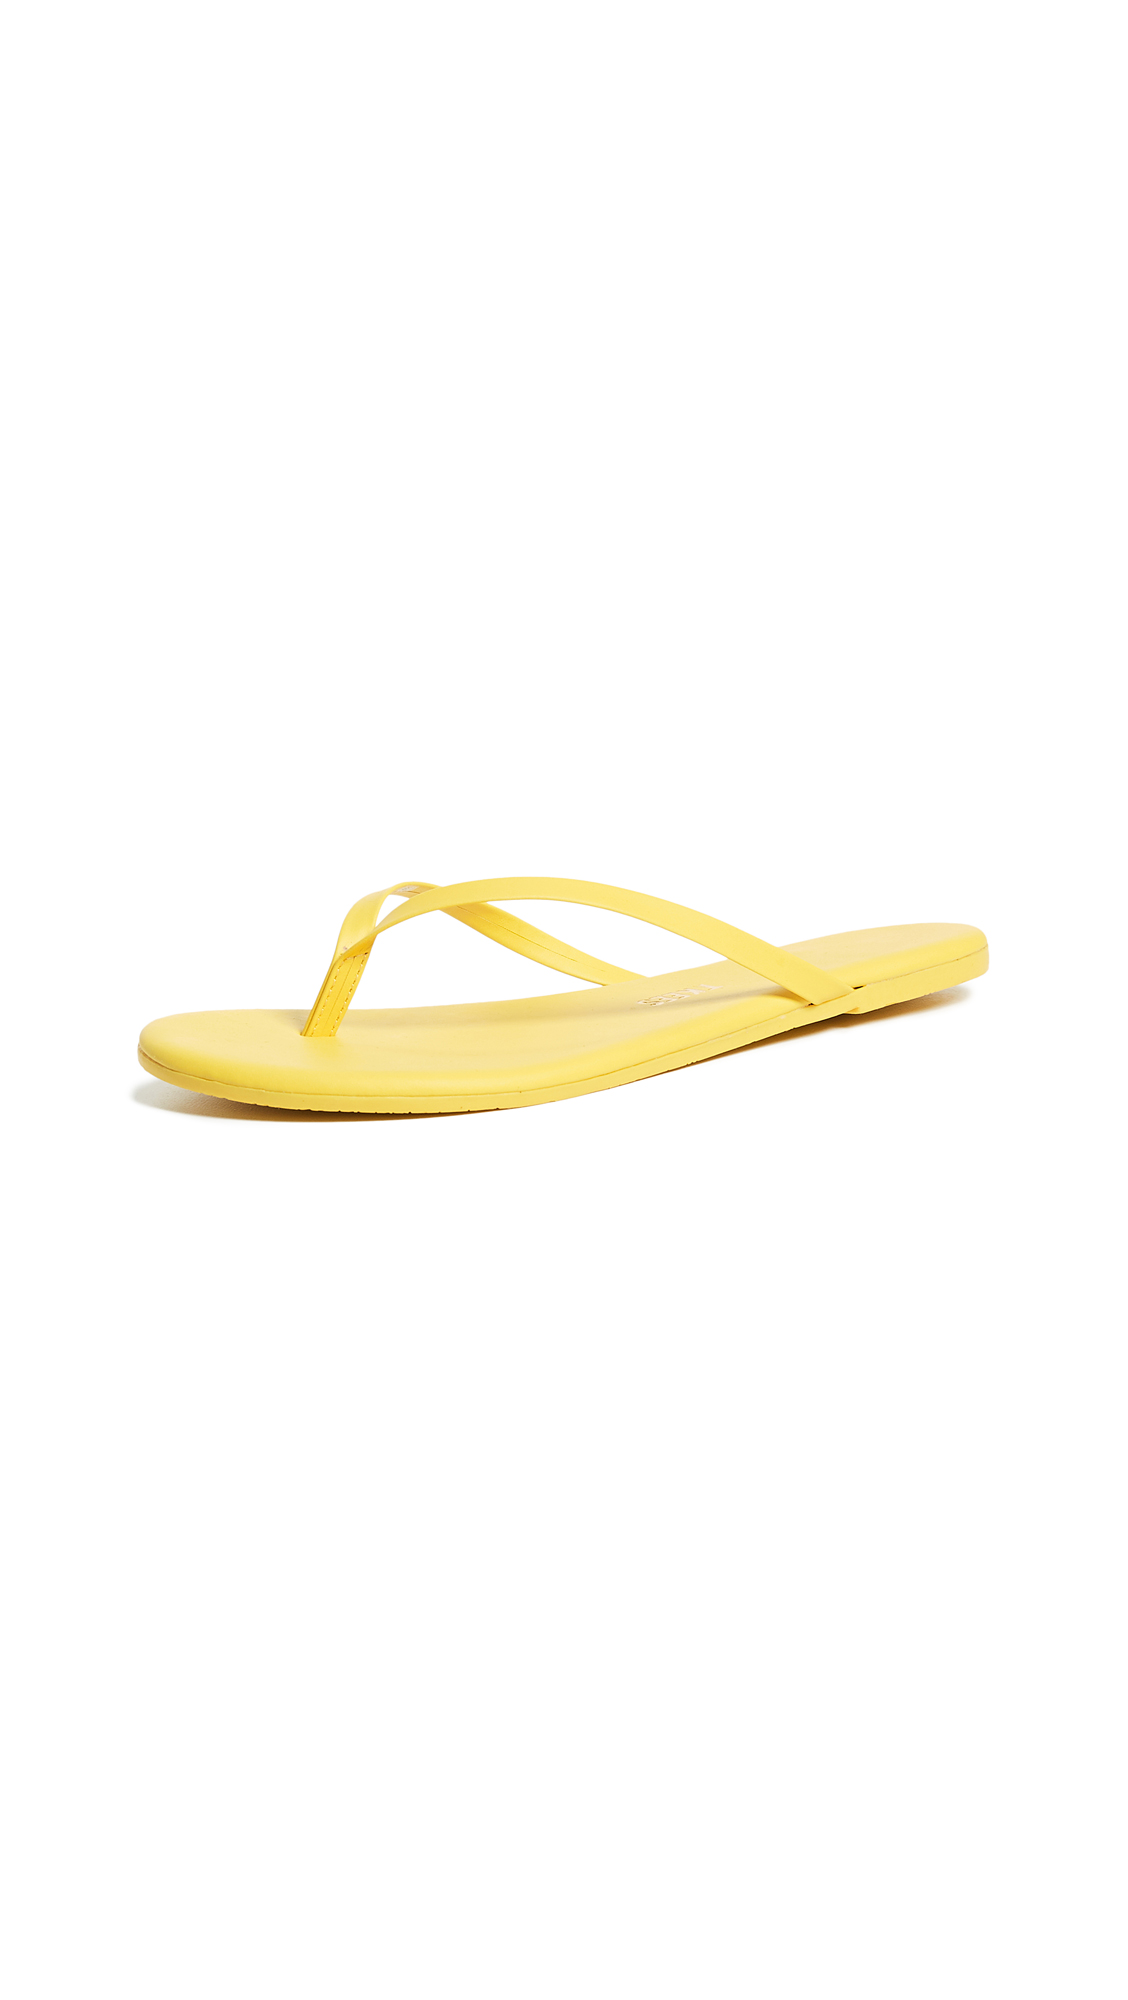 TKEES Solids Flip Flops - No. 4